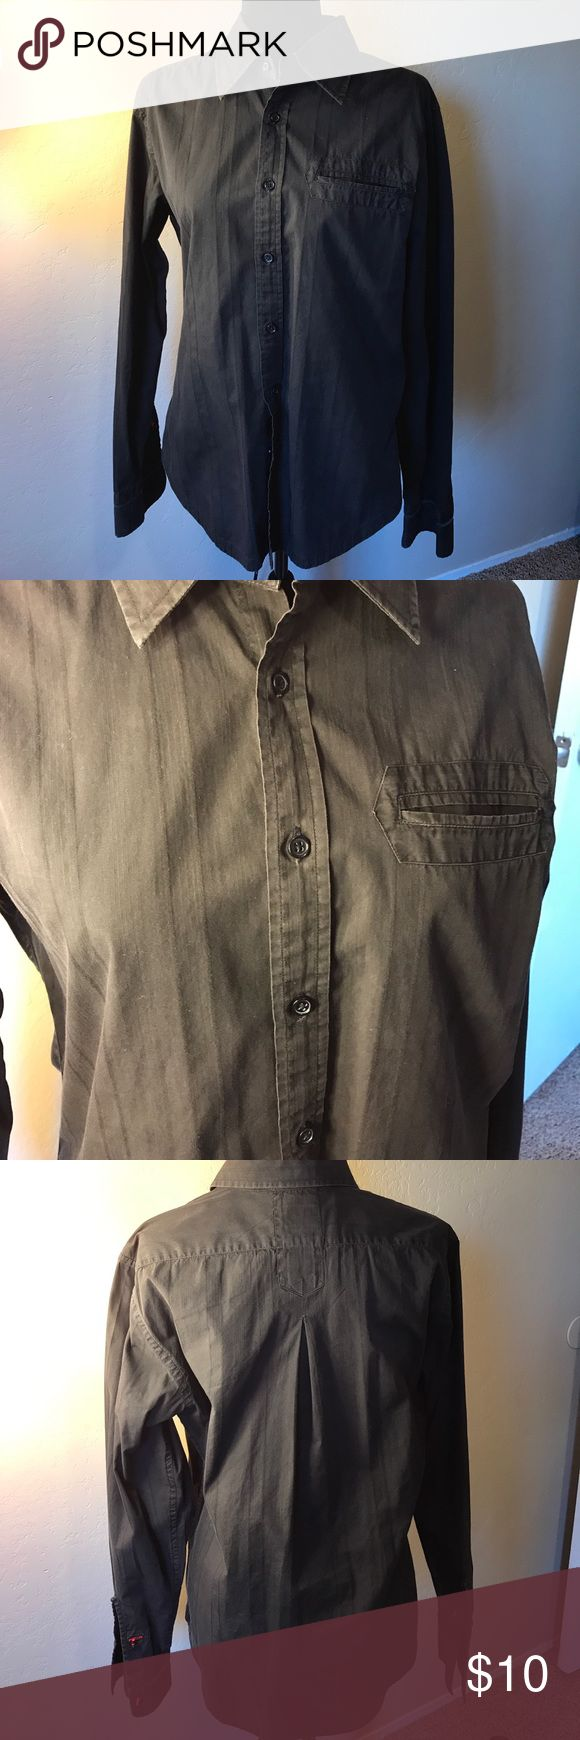 Men's Black Guess by Marciano Dress Shirt Vintage black Guess by Marciano men's Button Down dress shirt (long-sleeve). Made in India. Size Large. 100% Cotton, EUC. Guess by Marciano Shirts Dress Shirts